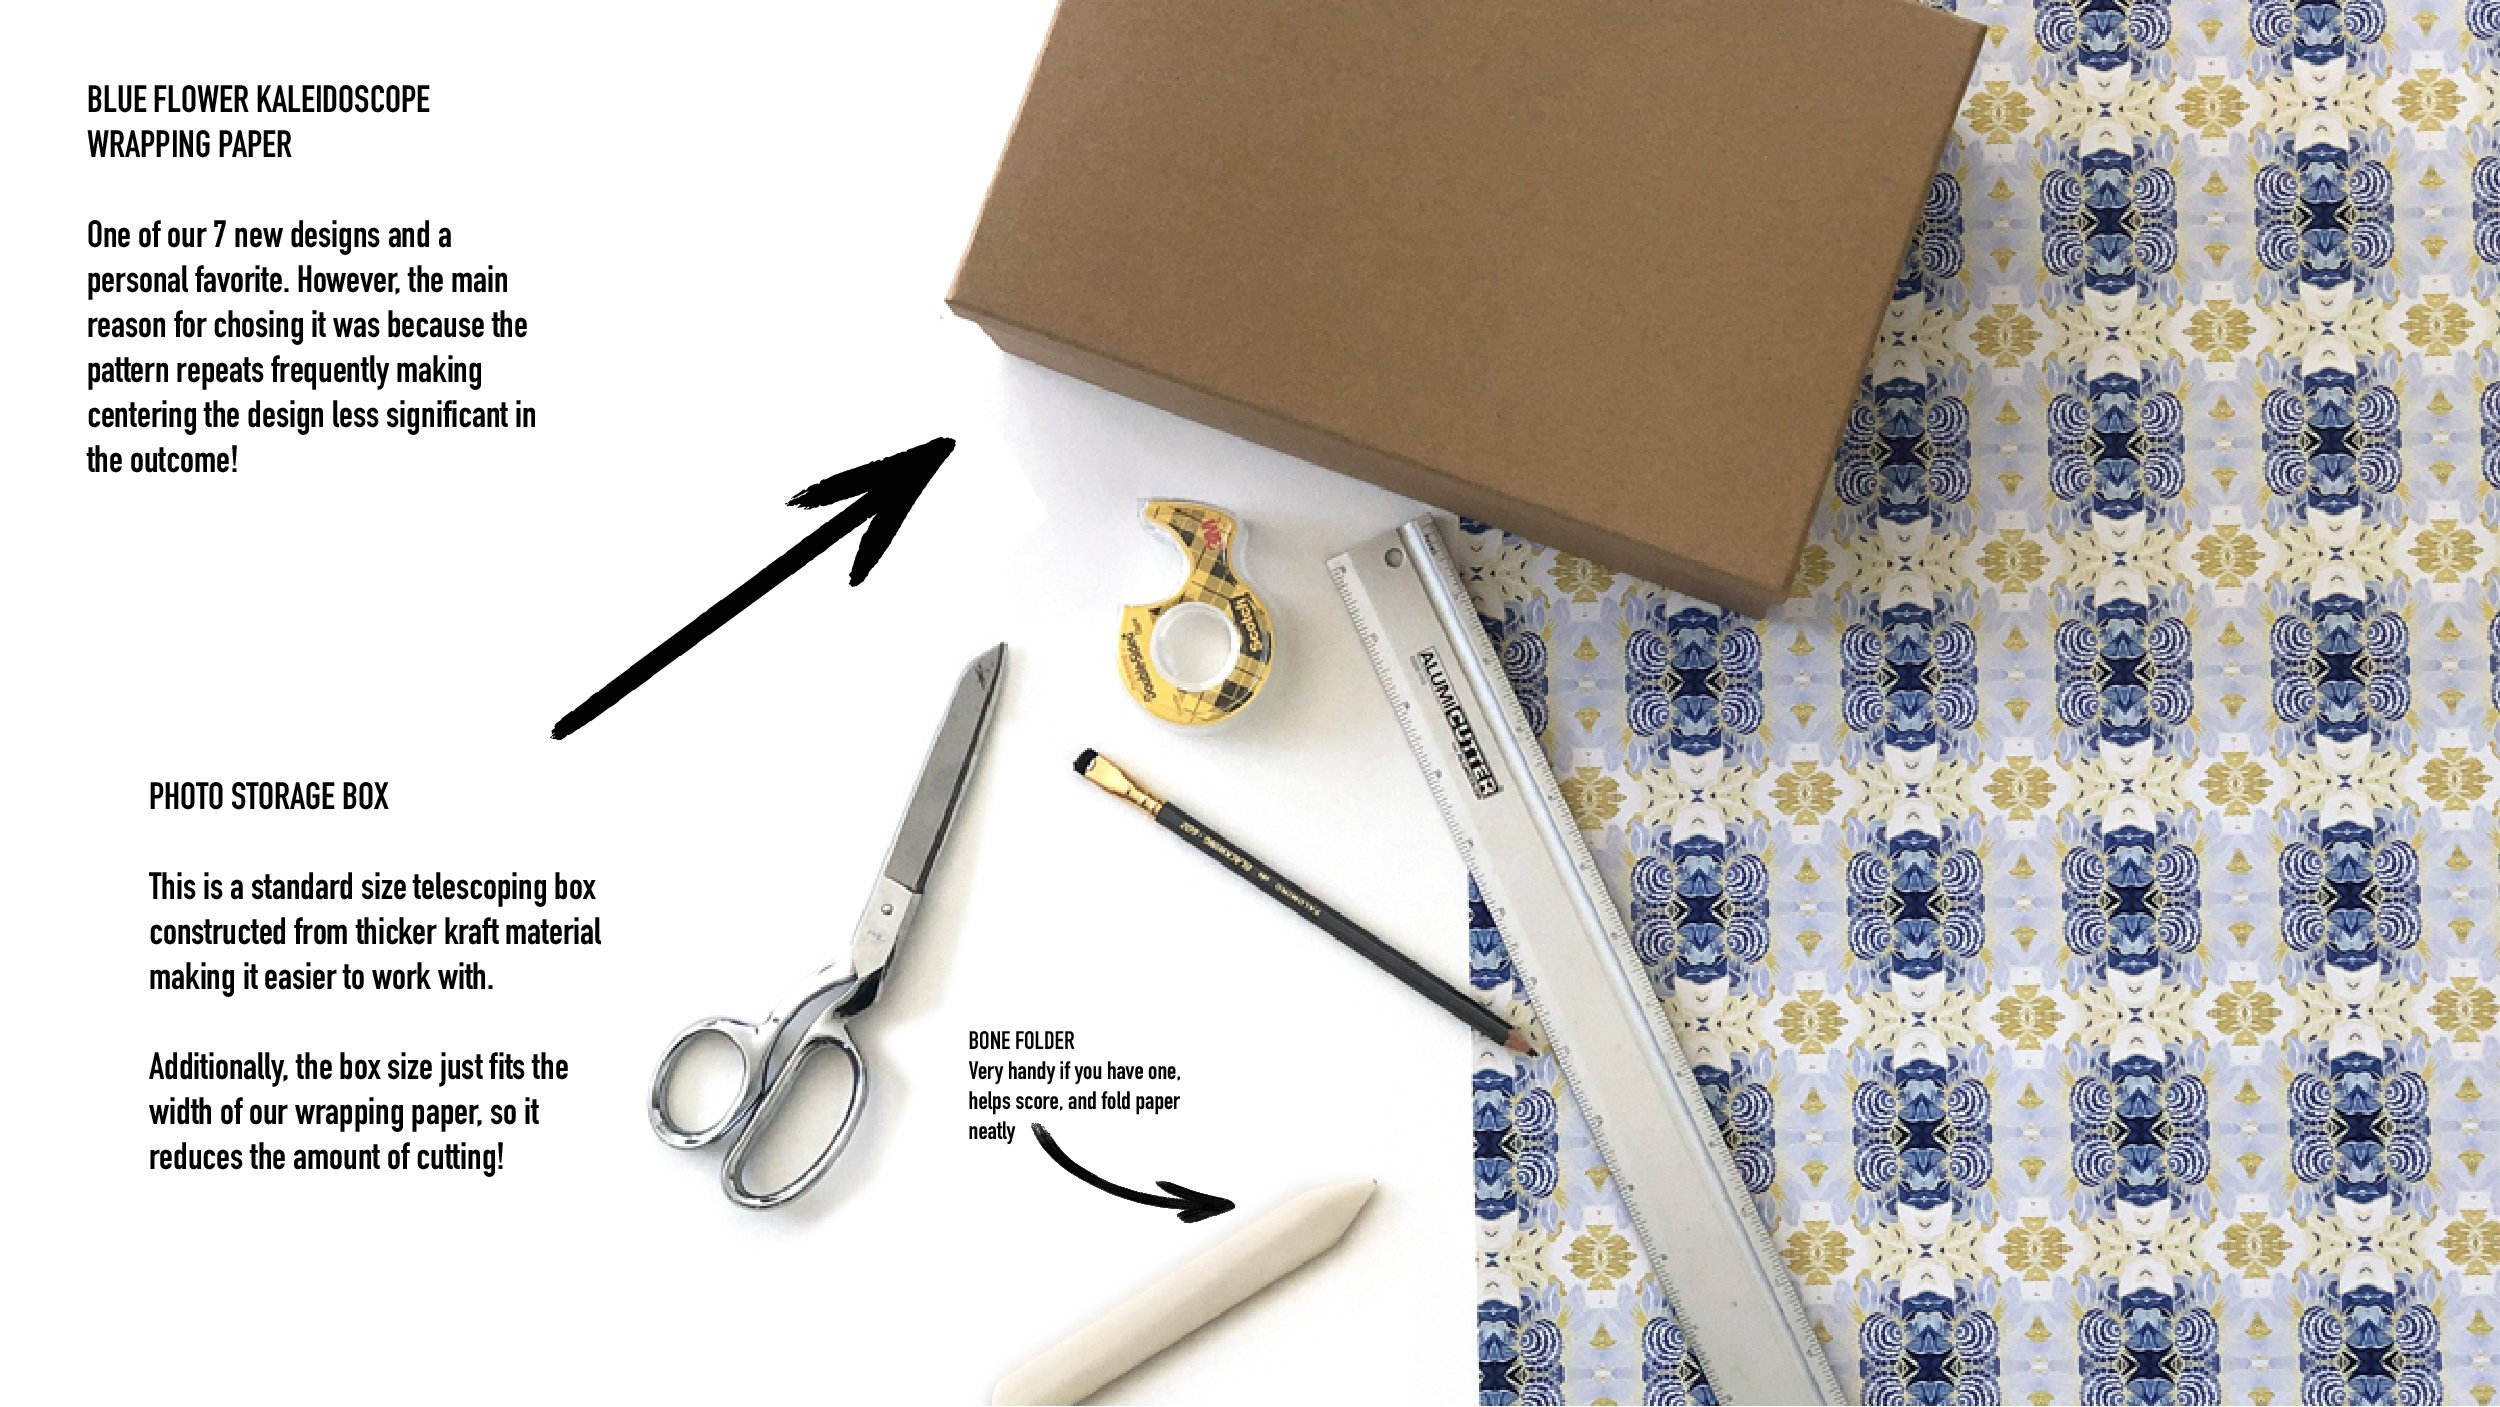 kraft box and wrapping paper laid out in preparation for wrapping - scissors, tape, pencil and ruler are ready